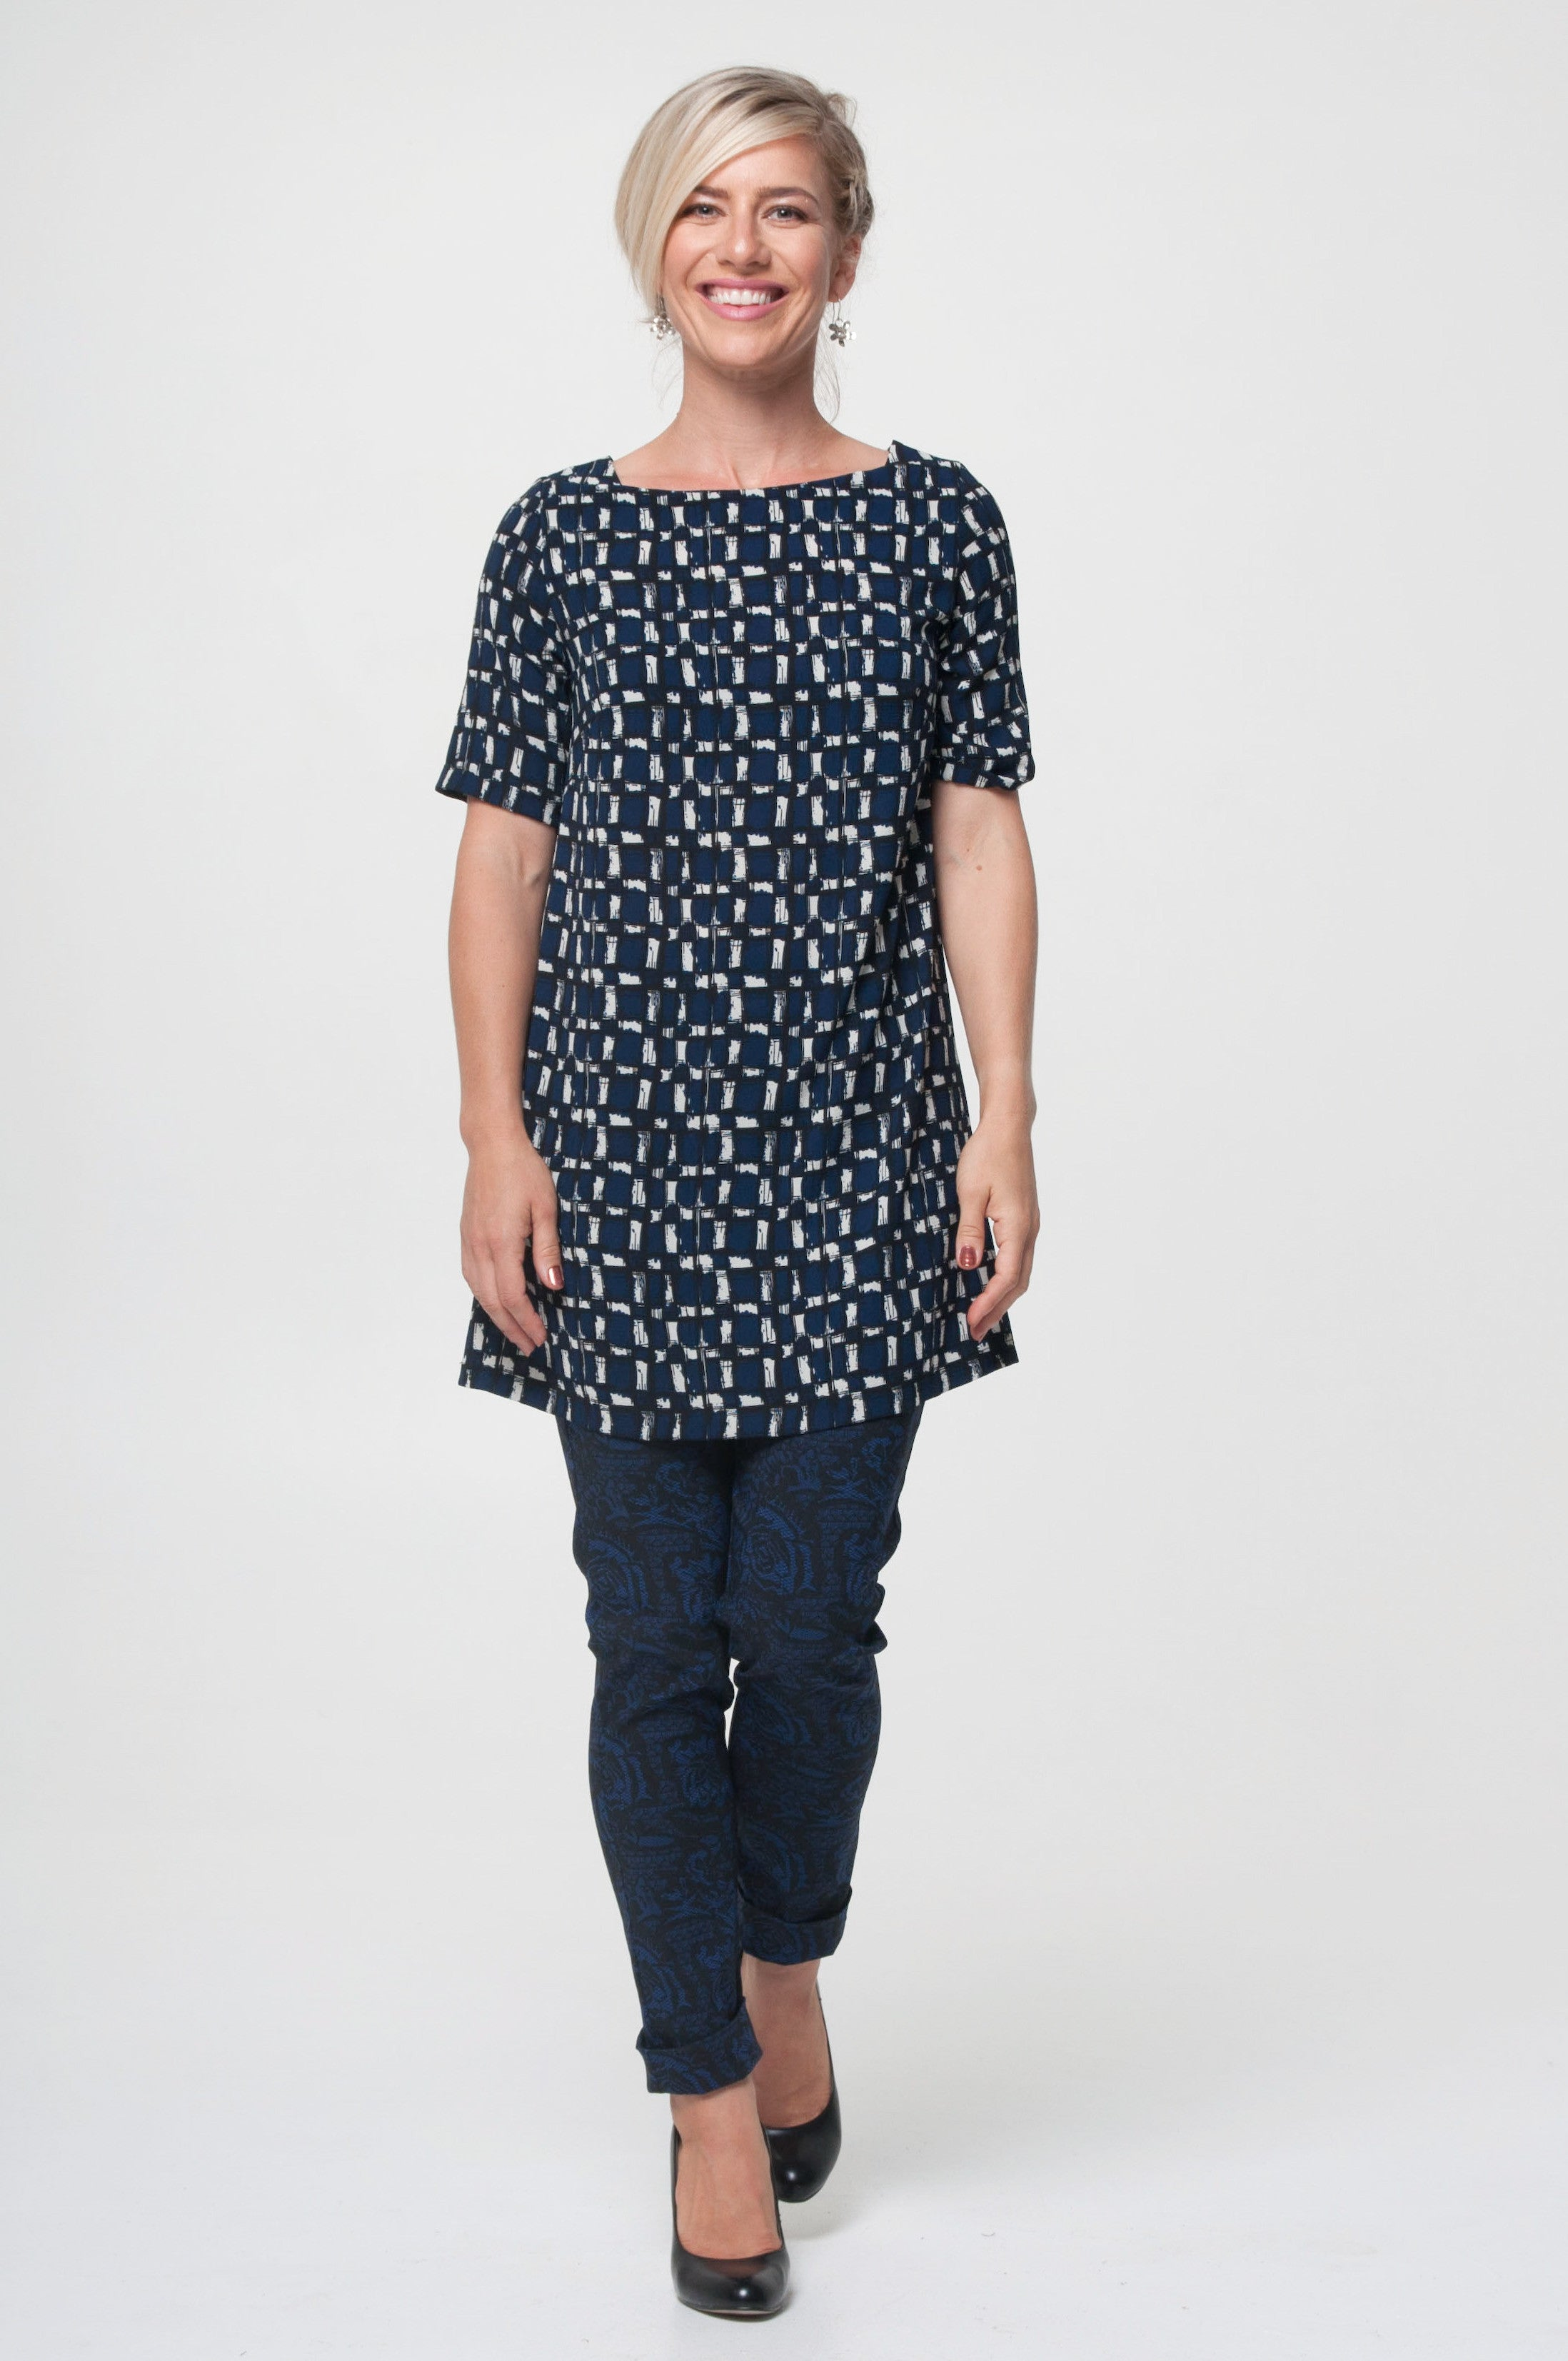 Vesta Egyptian Top - Blue Check was $178 now $158